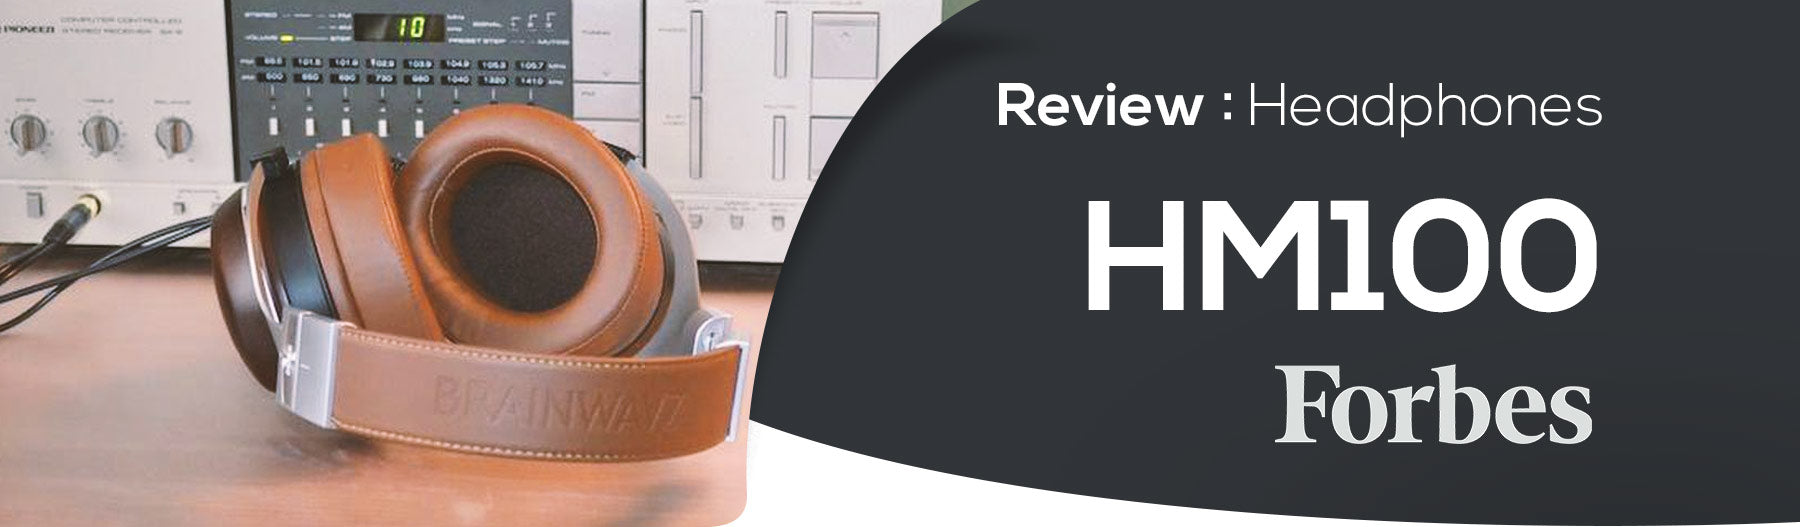 HM100 - The Forbes review